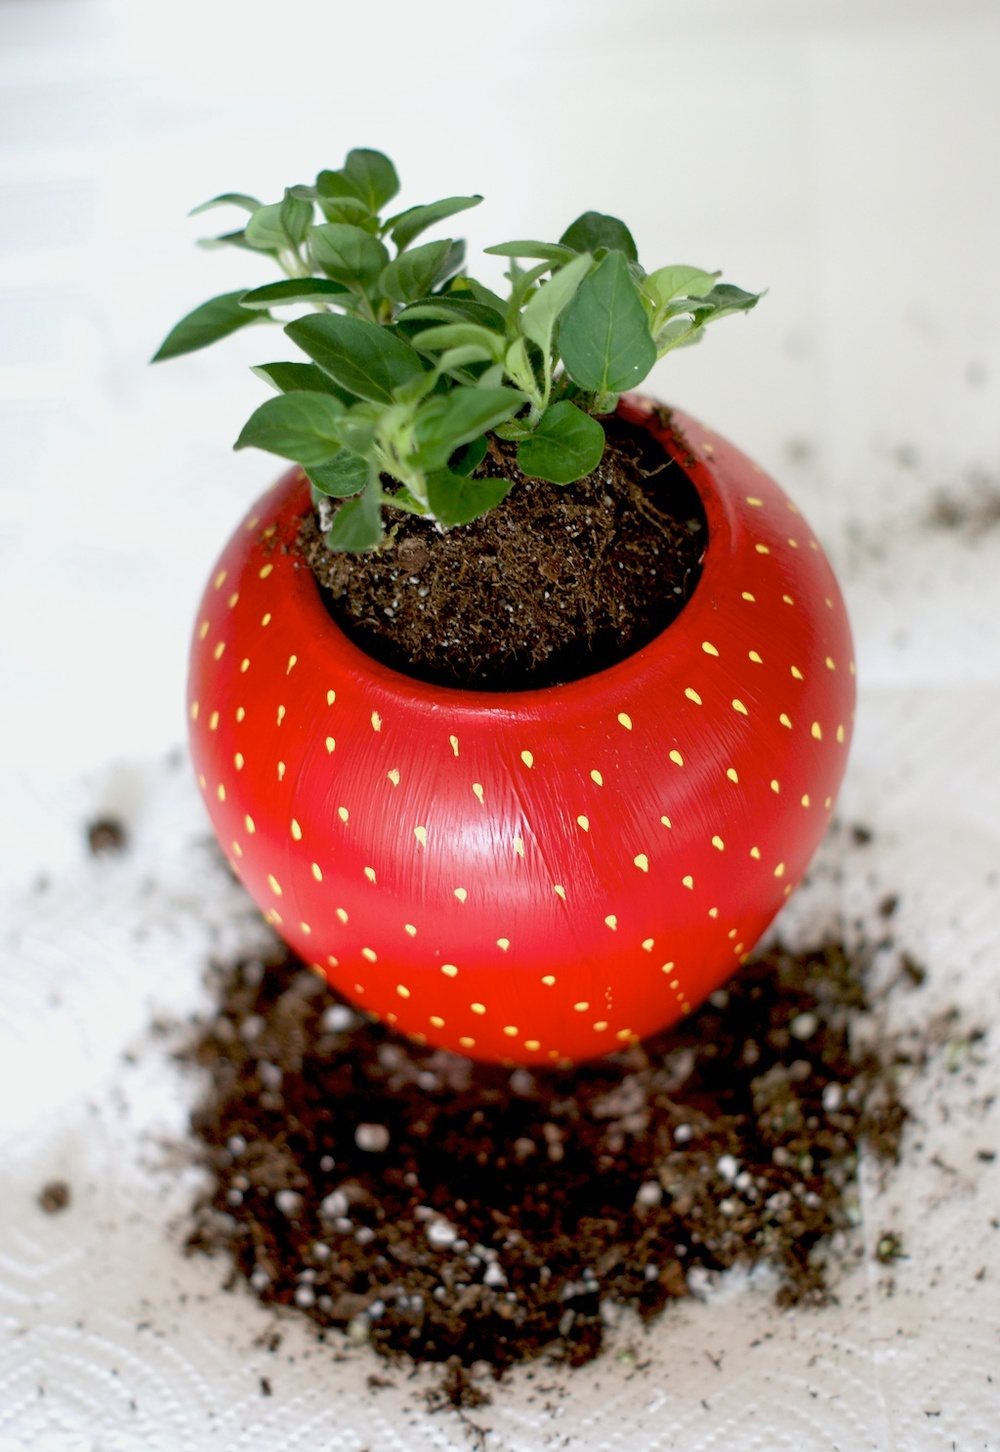 DIY Painted Strawberry Herb Planter tutorial